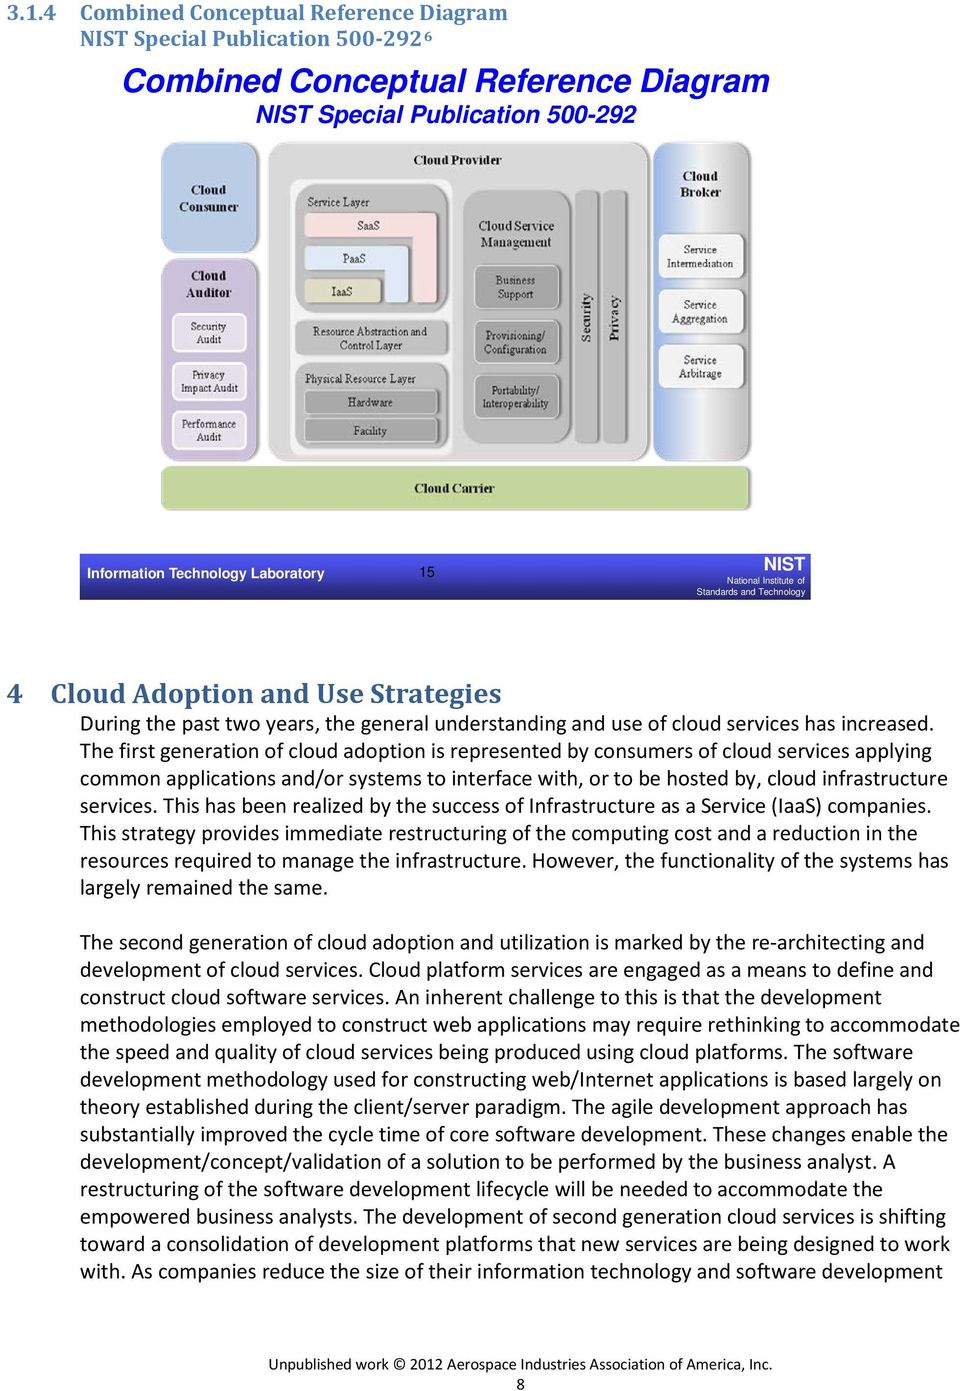 The first generation of cloud adoption is represented by consumers of cloud services applying common applications and/or systems to interface with, or to be hosted by, cloud infrastructure services.